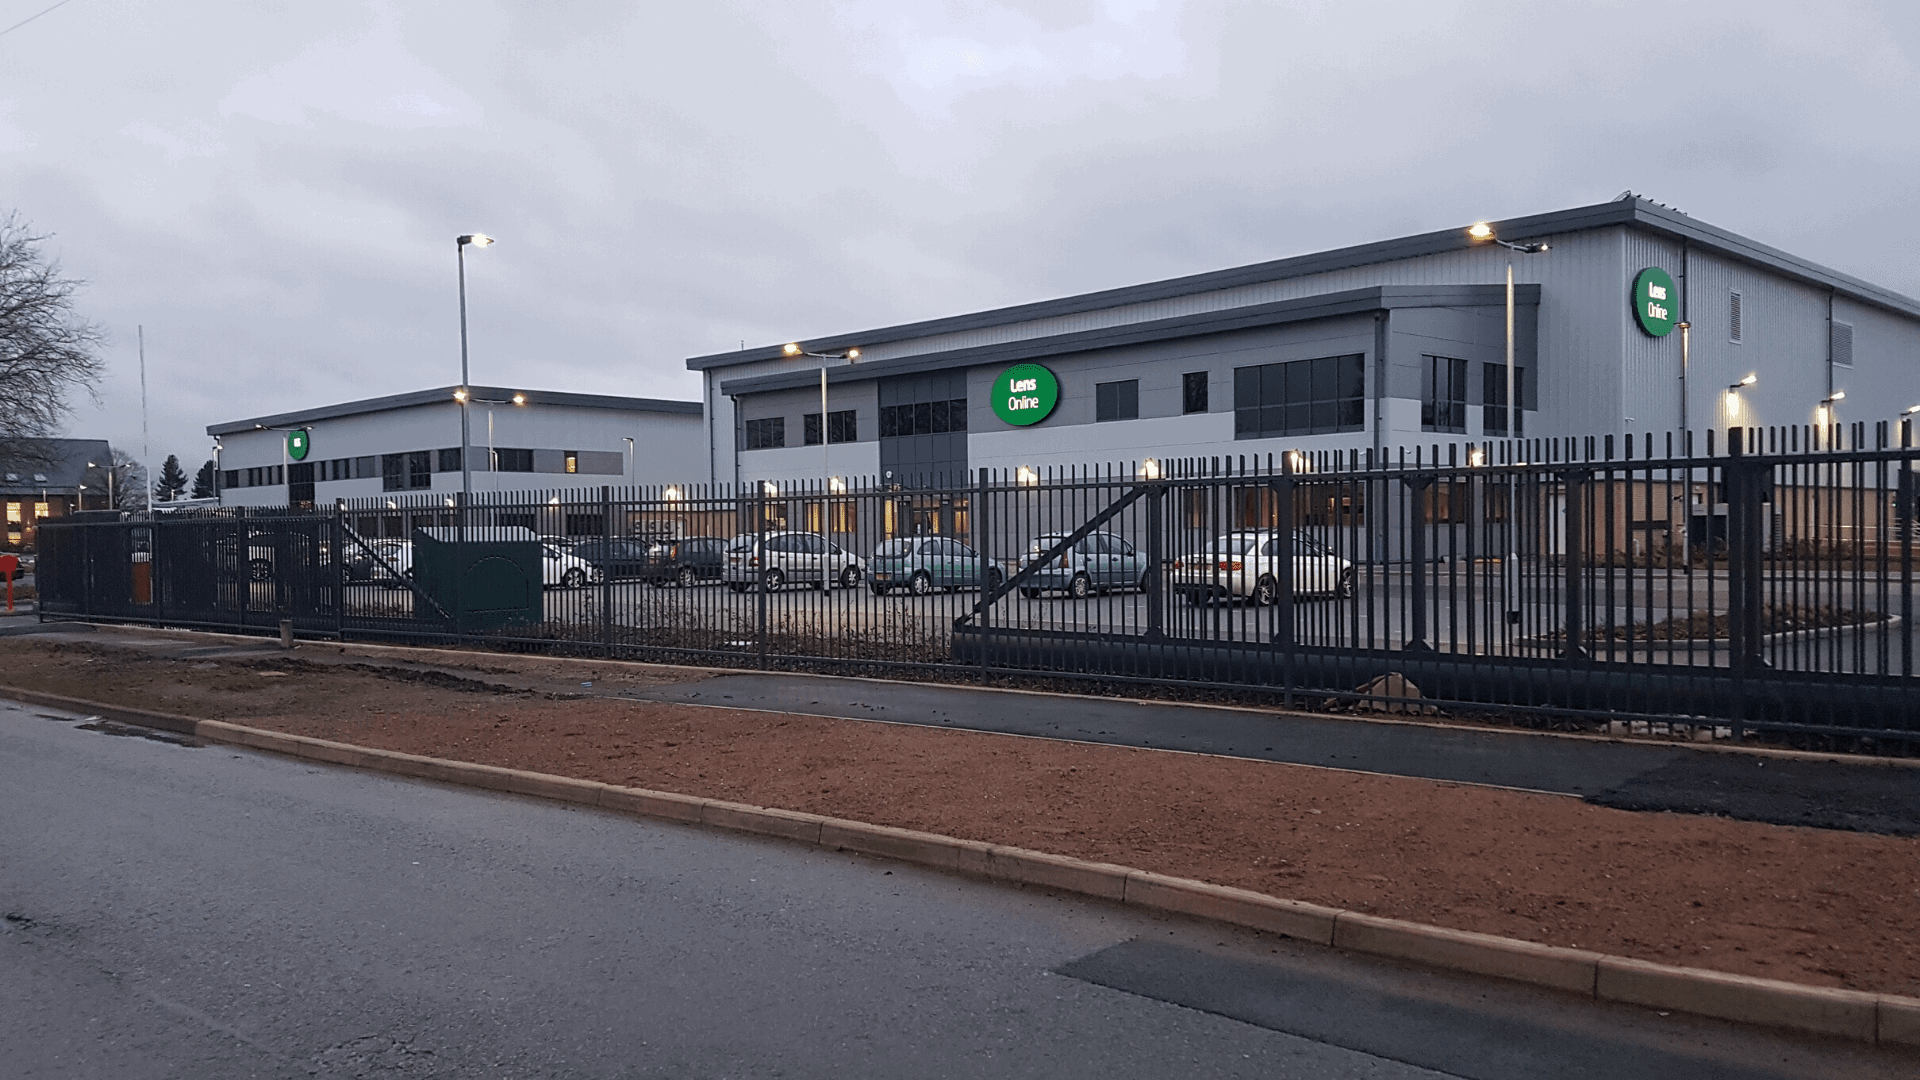 Specsavers International Glazing Services and Lens Online Distribution Centre Nuaire Case Study